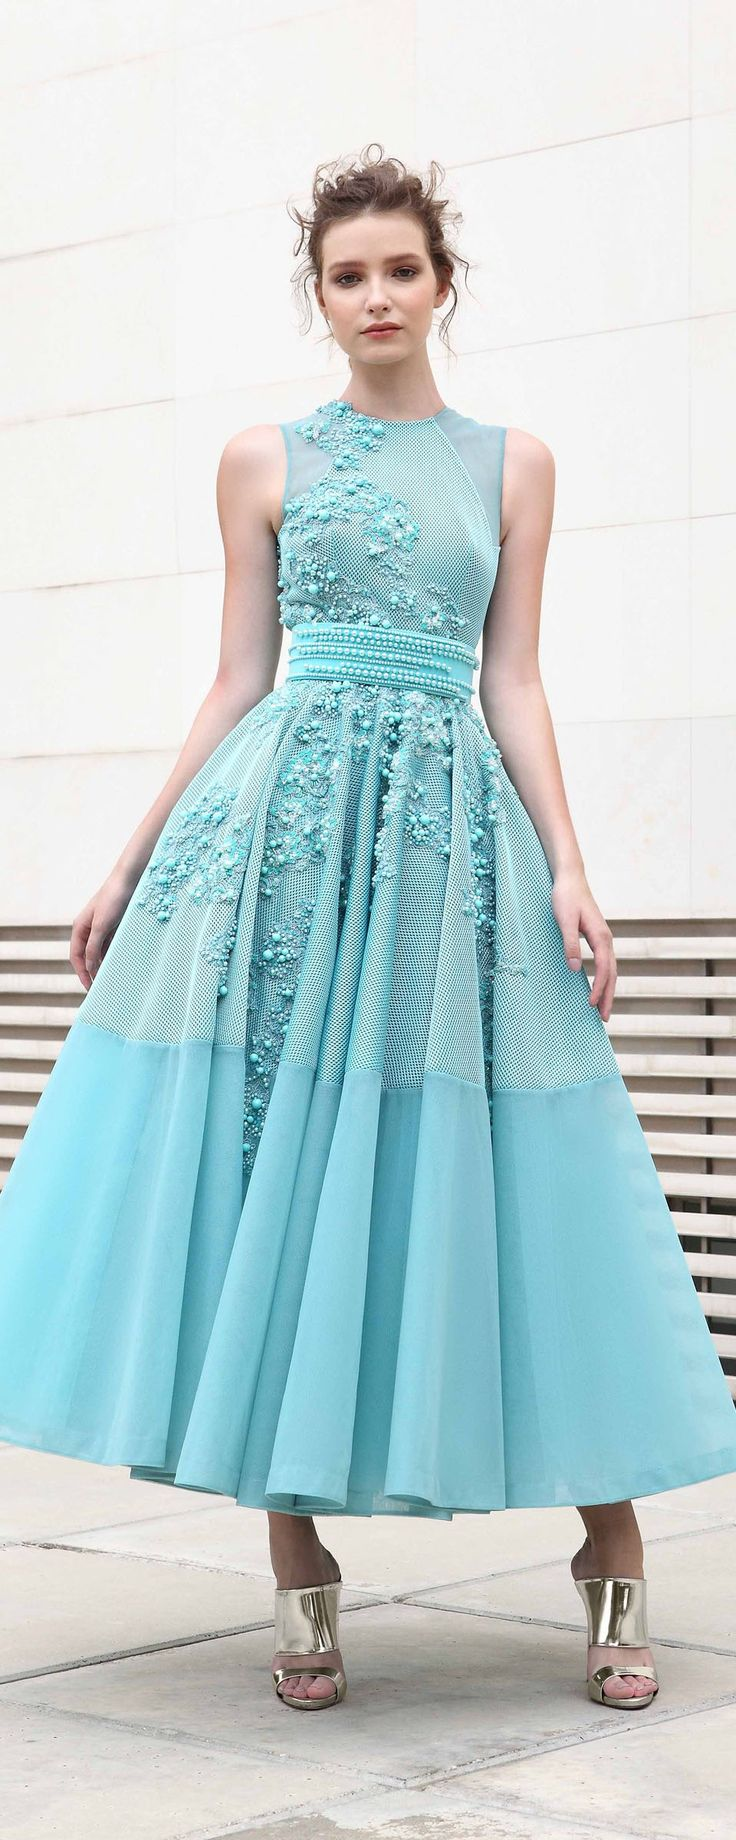 16231 best Evening & Party Gowns images on Pinterest | Black, Cute ...